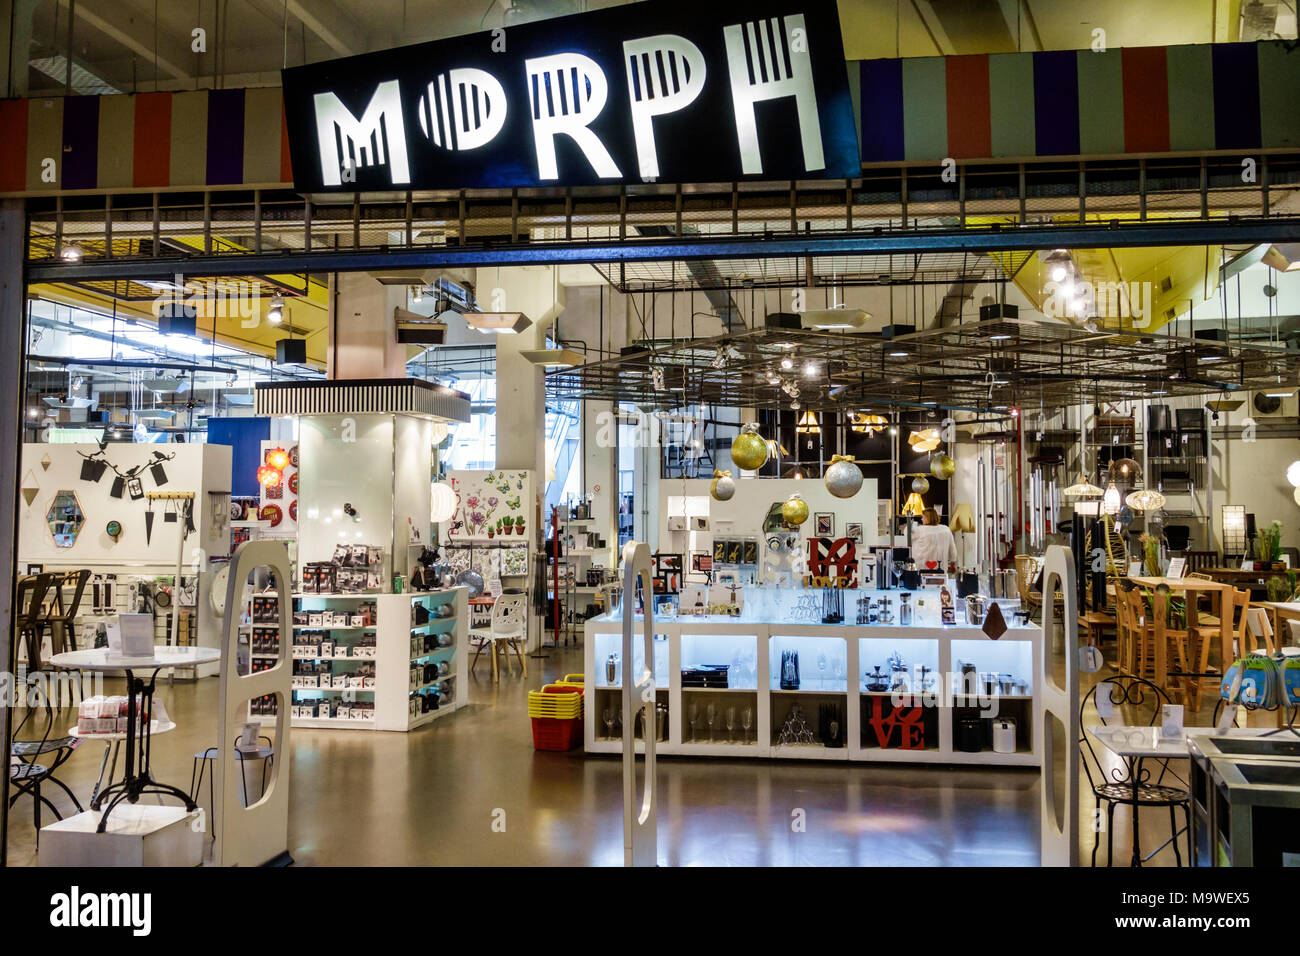 Buenos aires argentina recoleta buenos aires design mall shopping morph store home furnishings decor hispanic argentinean argentinian argentine south